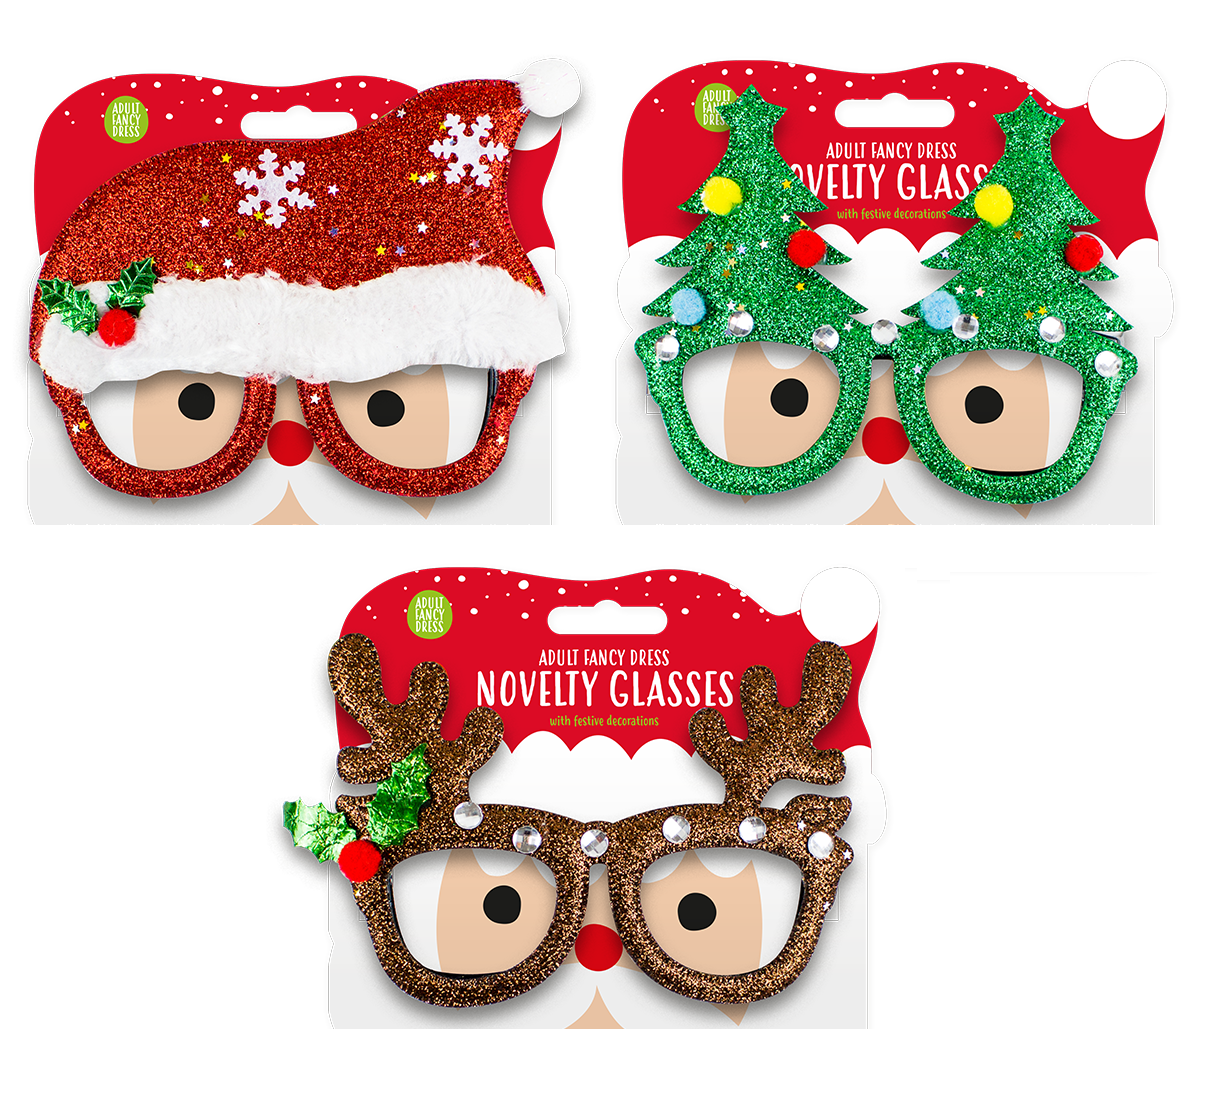 Novelty Christmas Glasses Xmas Party Glittery Sparkly Sunglasses Fun Festive